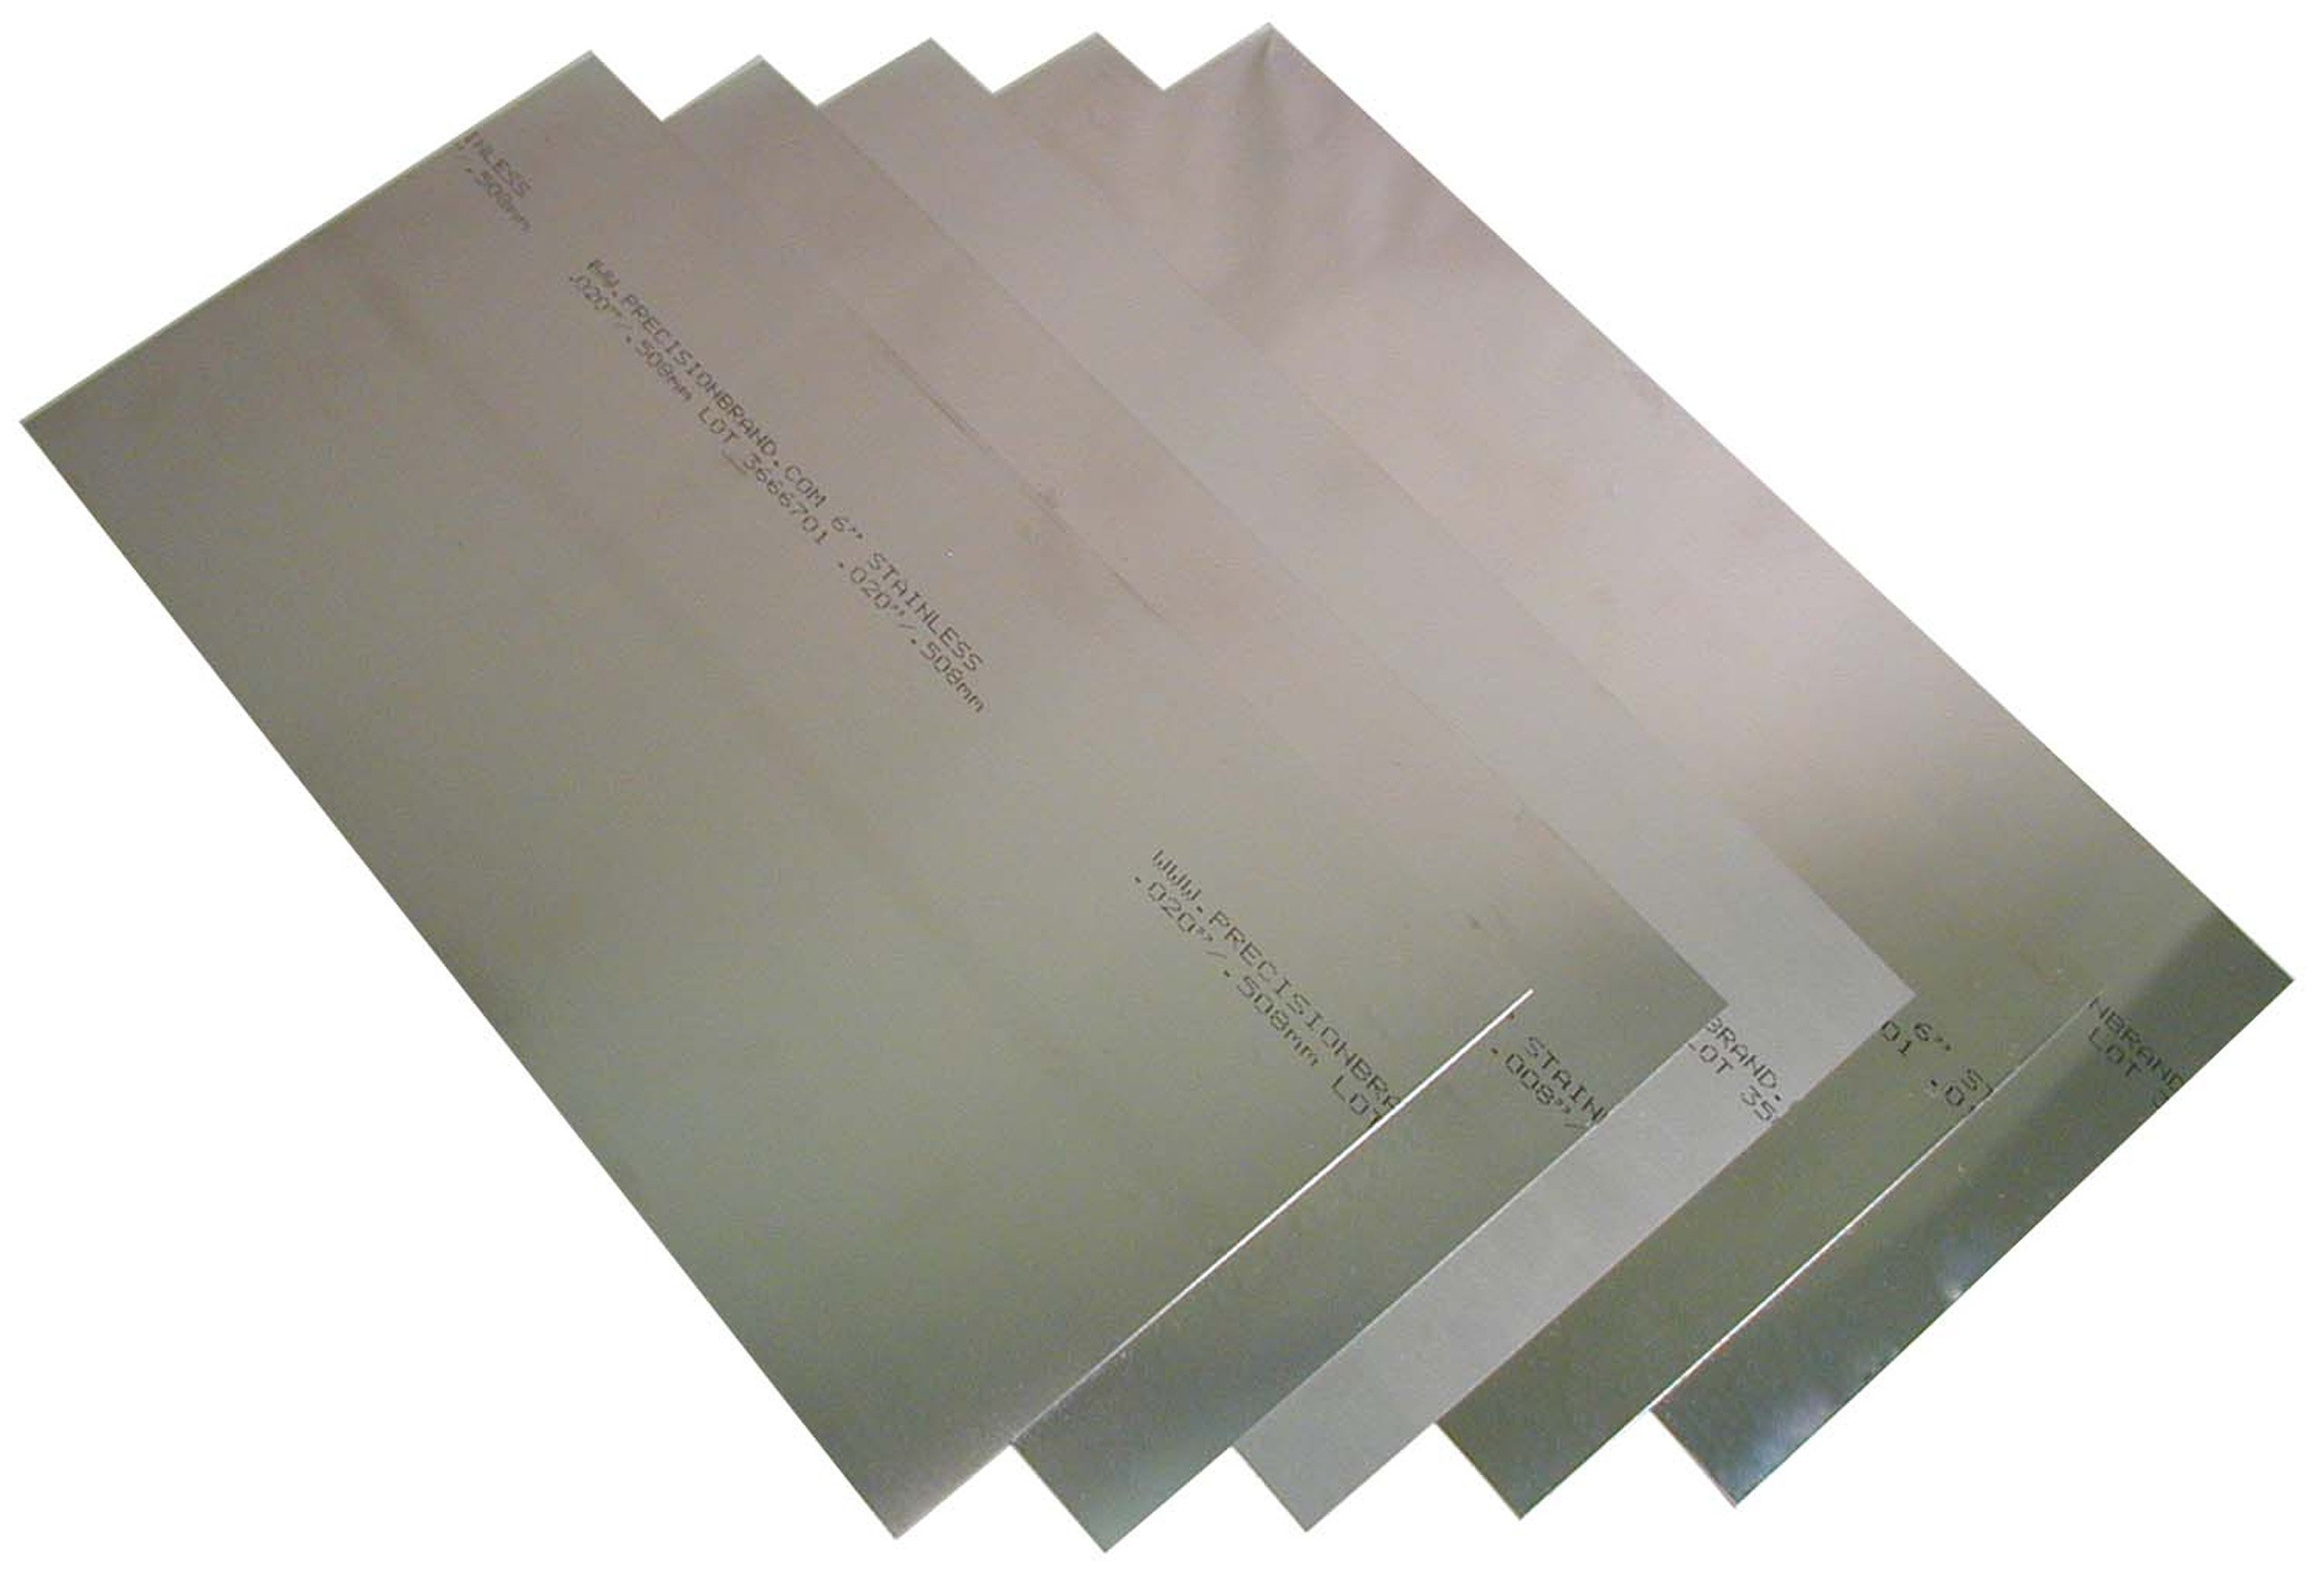 302 Stainless Steel Sheet, Unpolished (Mill) Finish, Full Hard Temper, 0.001-0.020'' Thickness, 6'' Width, 12'' Length (Pack of 8) by Small Parts